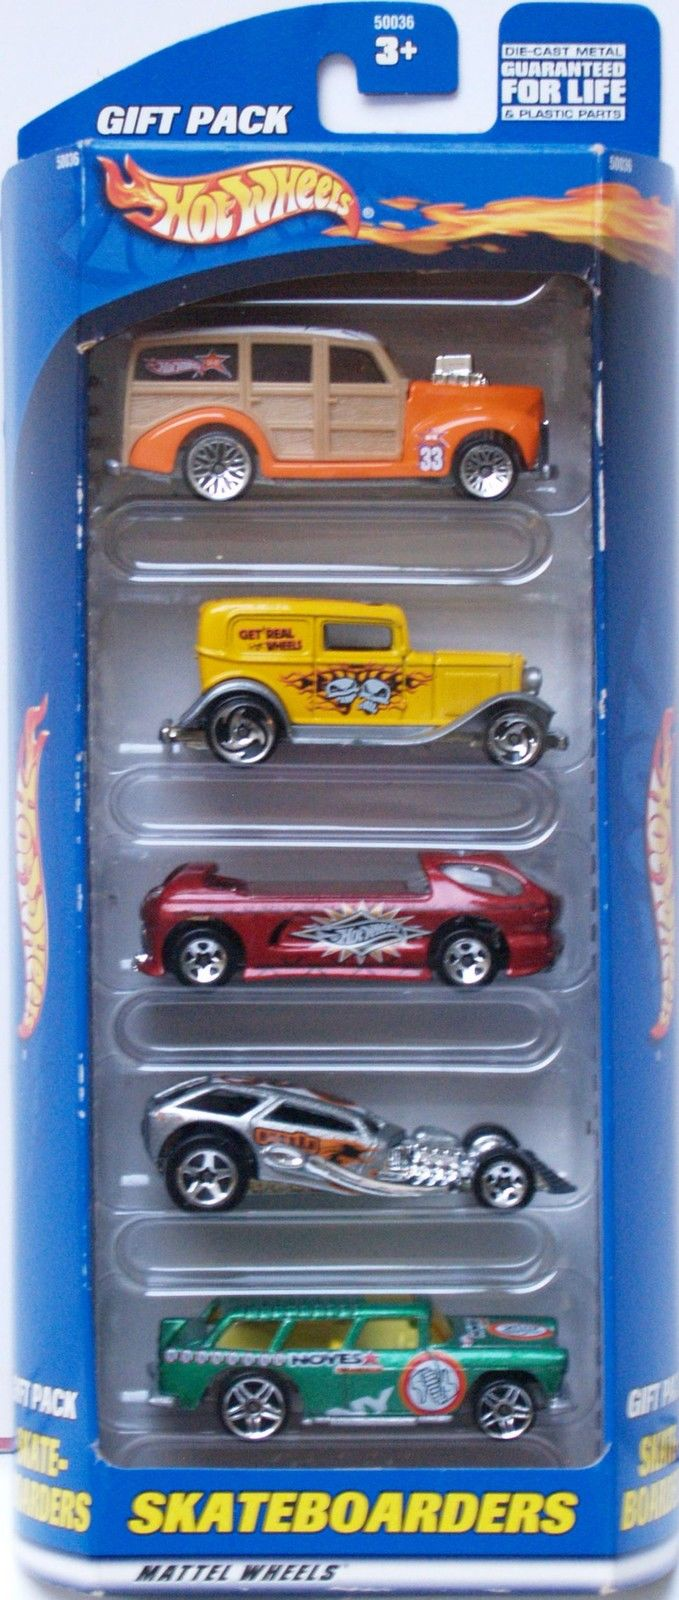 HOT WHEELS 2000 GIFT PACK SKATEBOARDERS CHEVY NOMAD 5 CAR PACK